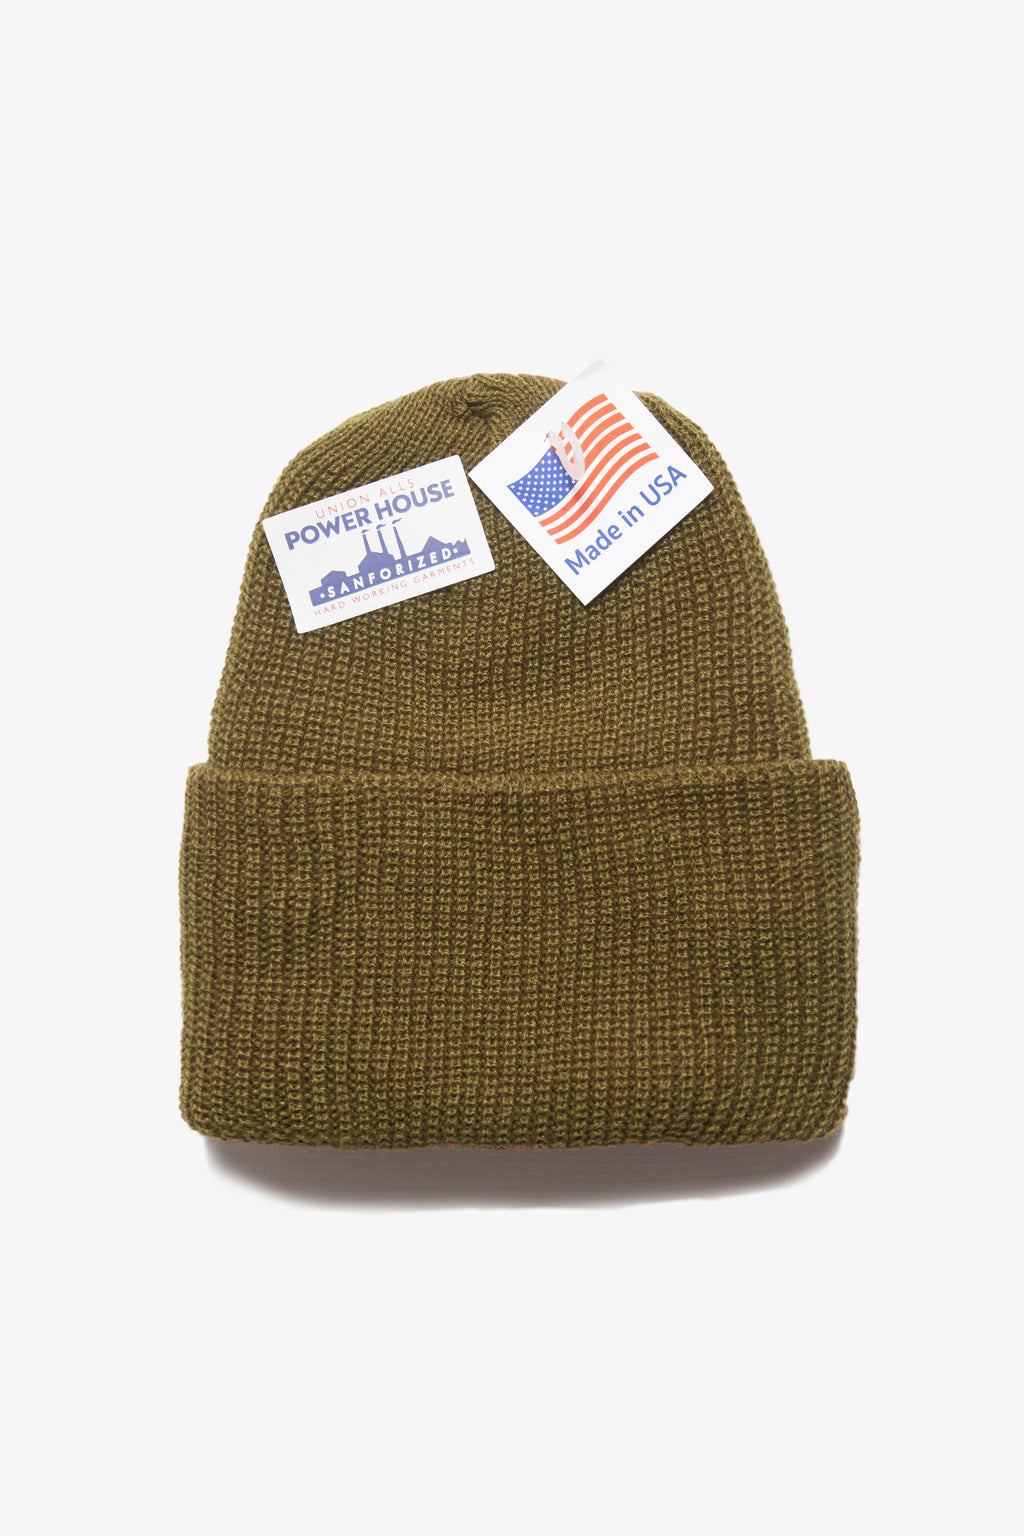 Power House - Watch Cap Beanie - Olive